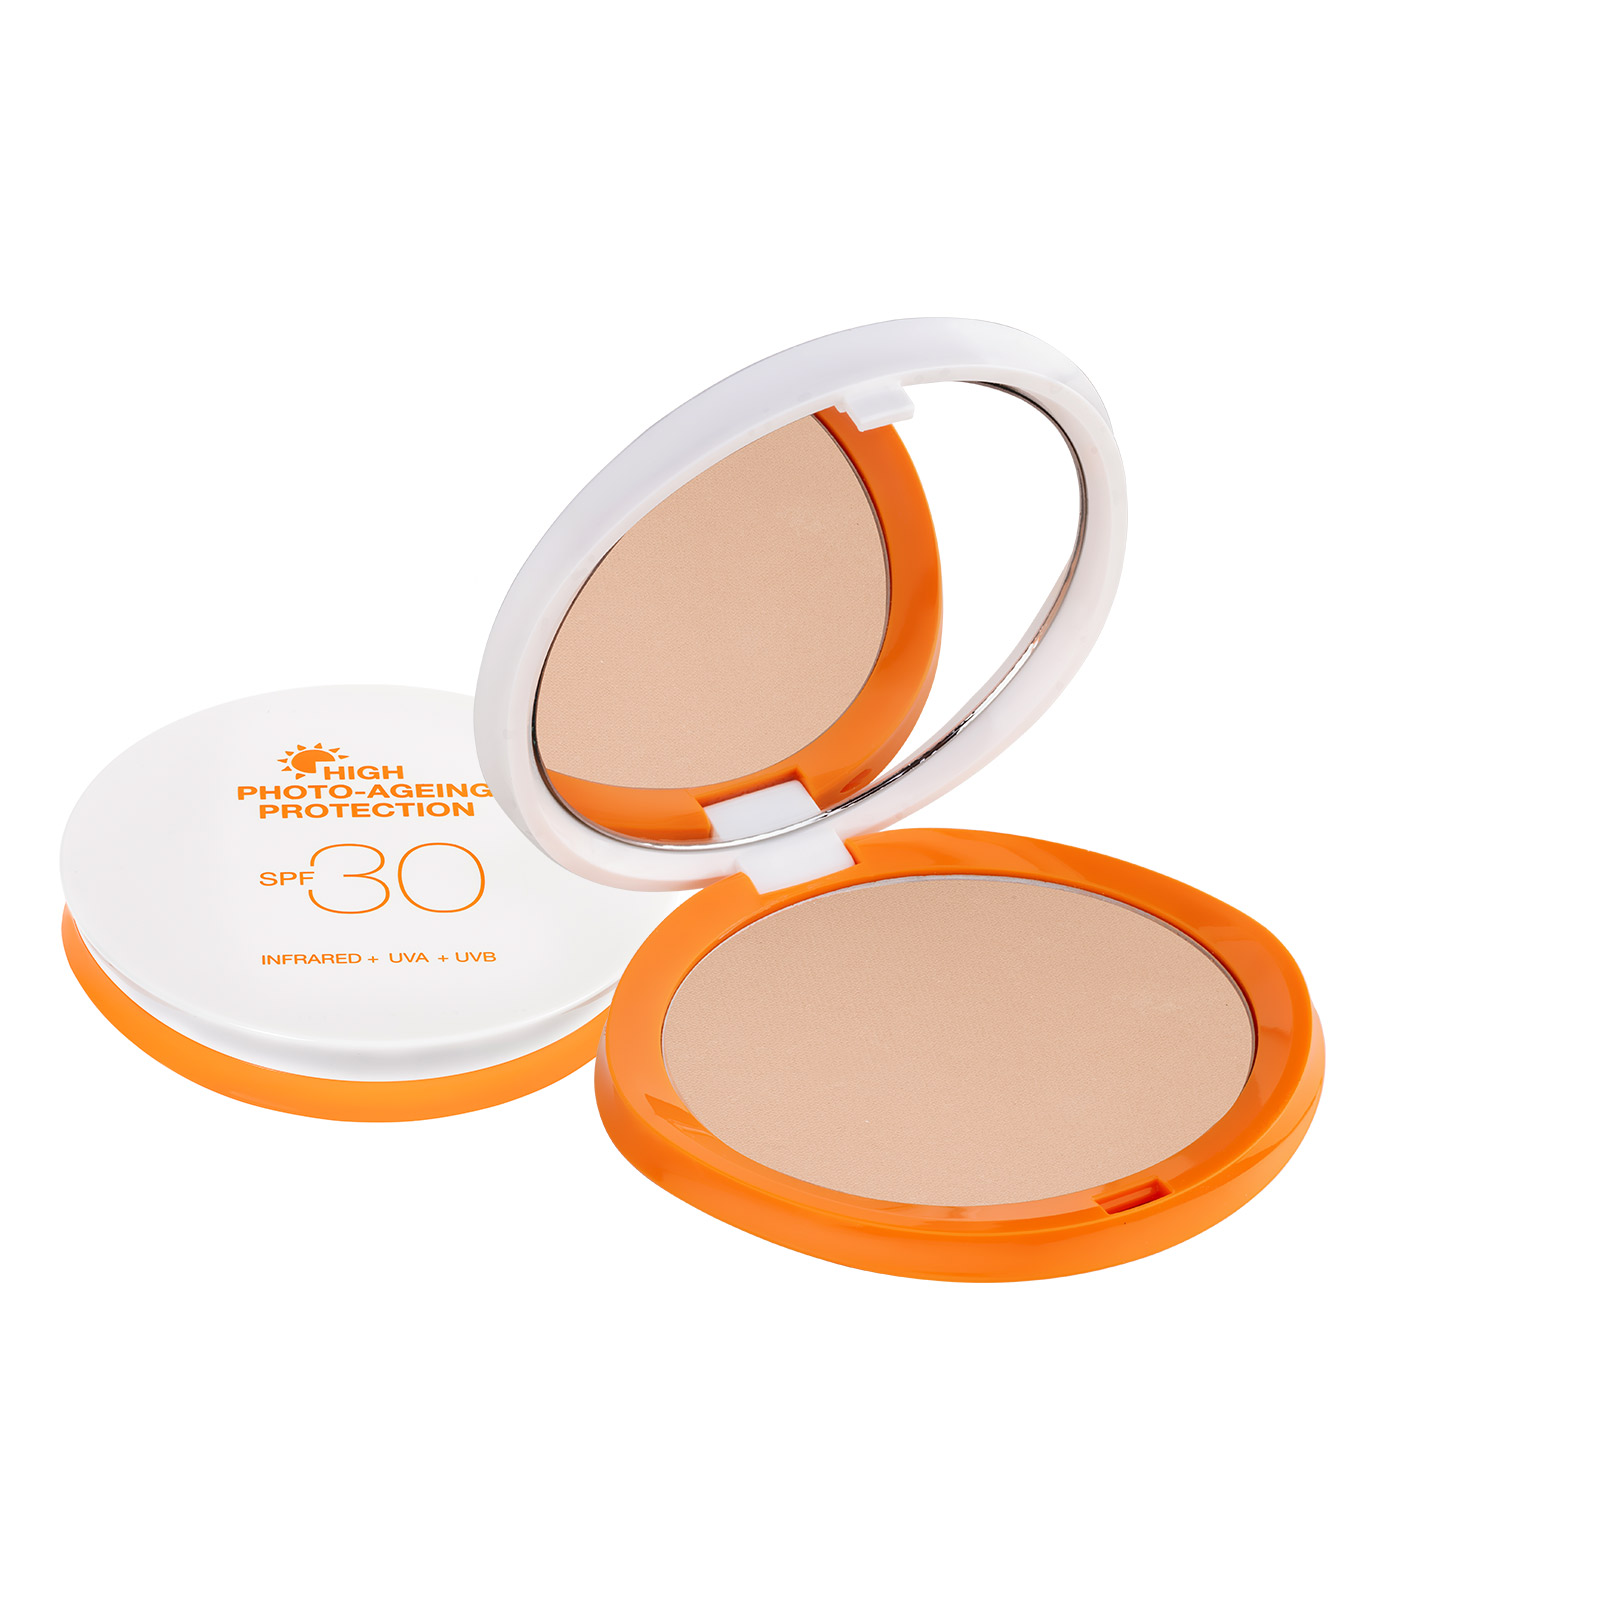 High Photo Ageing Protection SPF30 - Compact Powder